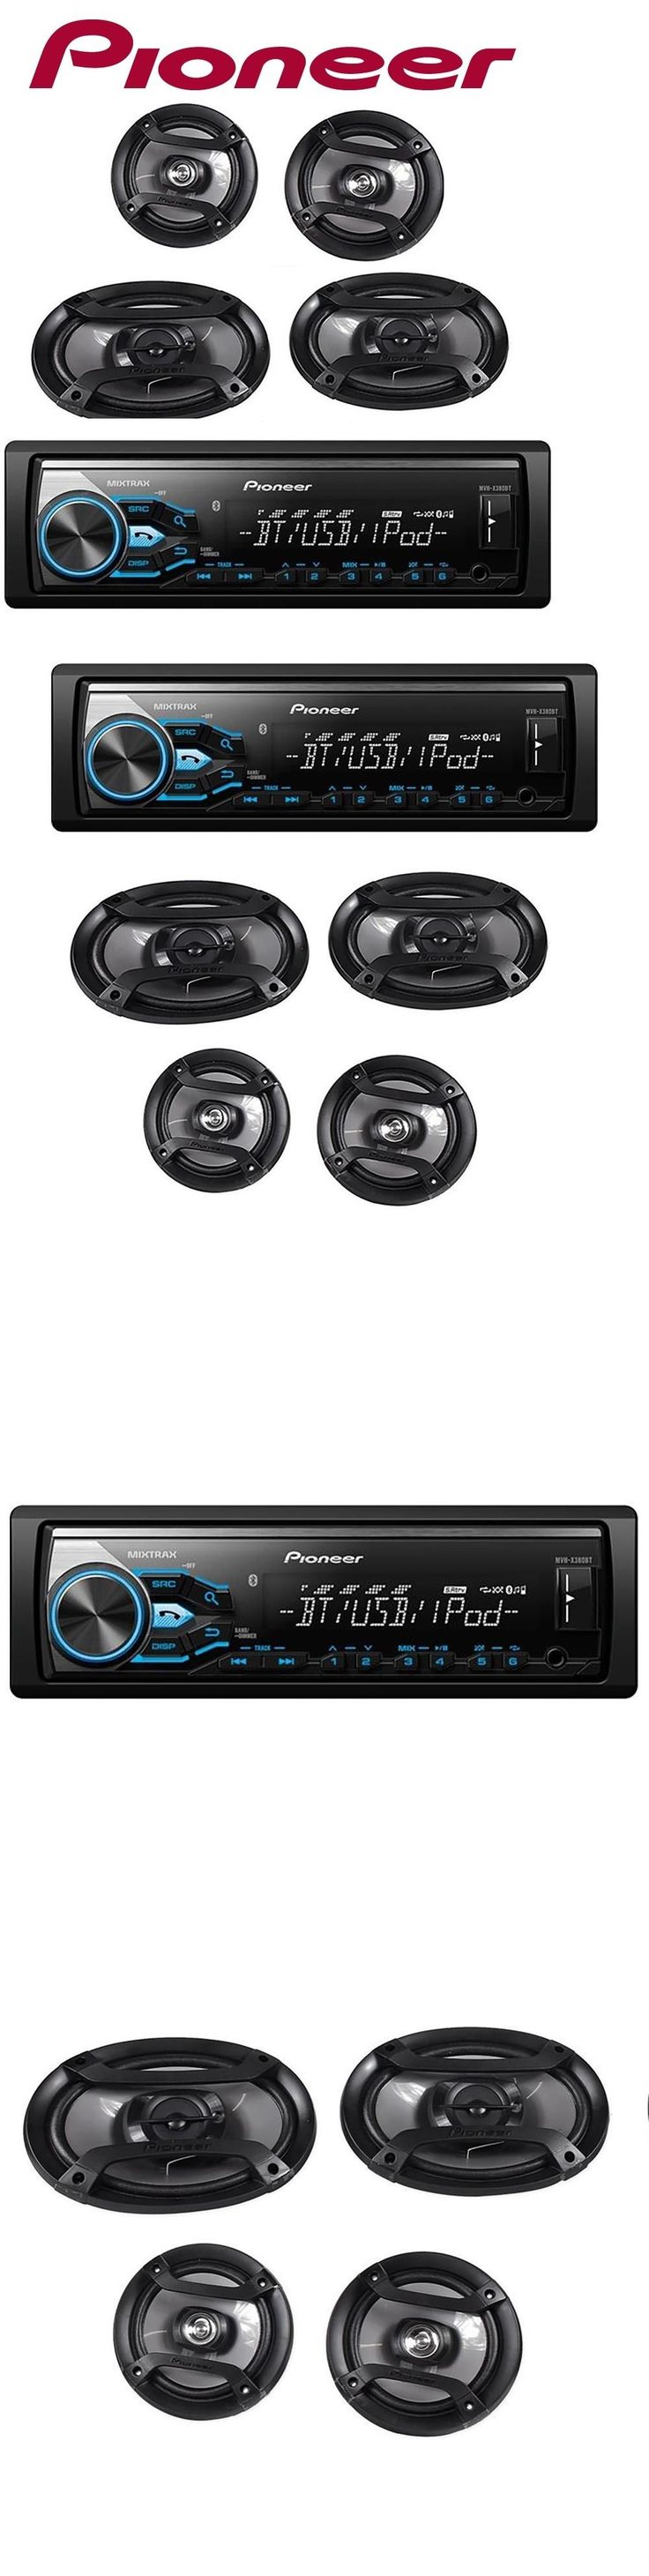 Car Audio In-Dash Units: Pioneer Mxt-X3869bt Bluetooth In-Dash Digital Media Receiver System W Speakers -> BUY IT NOW ONLY: $89.96 on eBay!